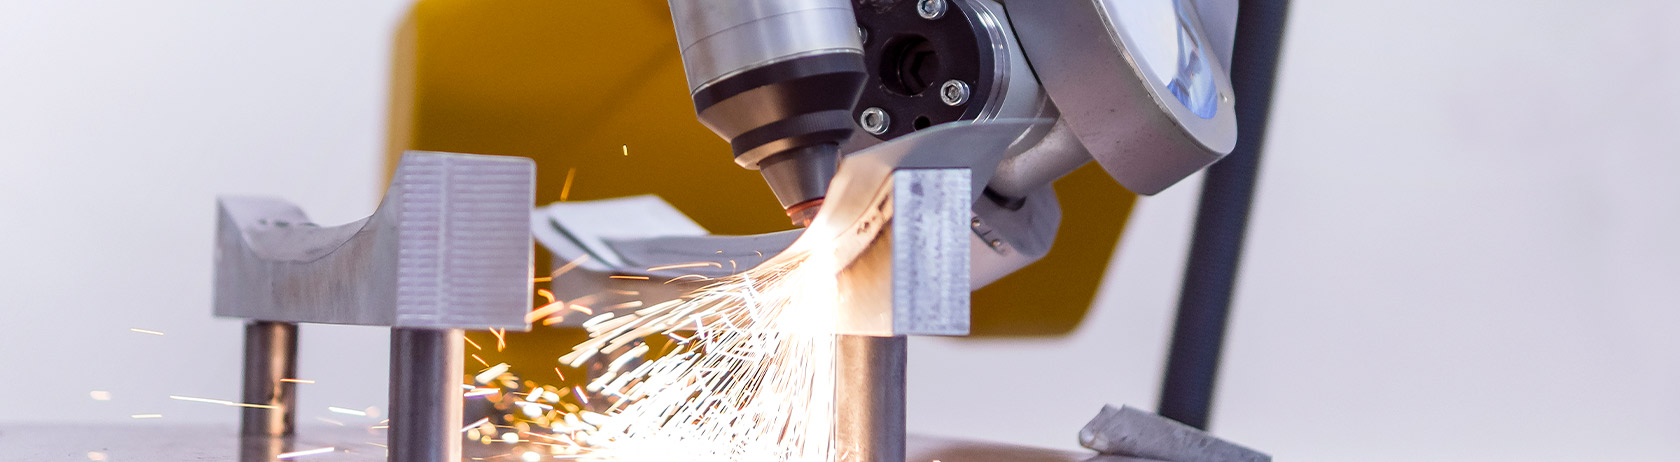 Robotic arm laser cutting metal with sparks